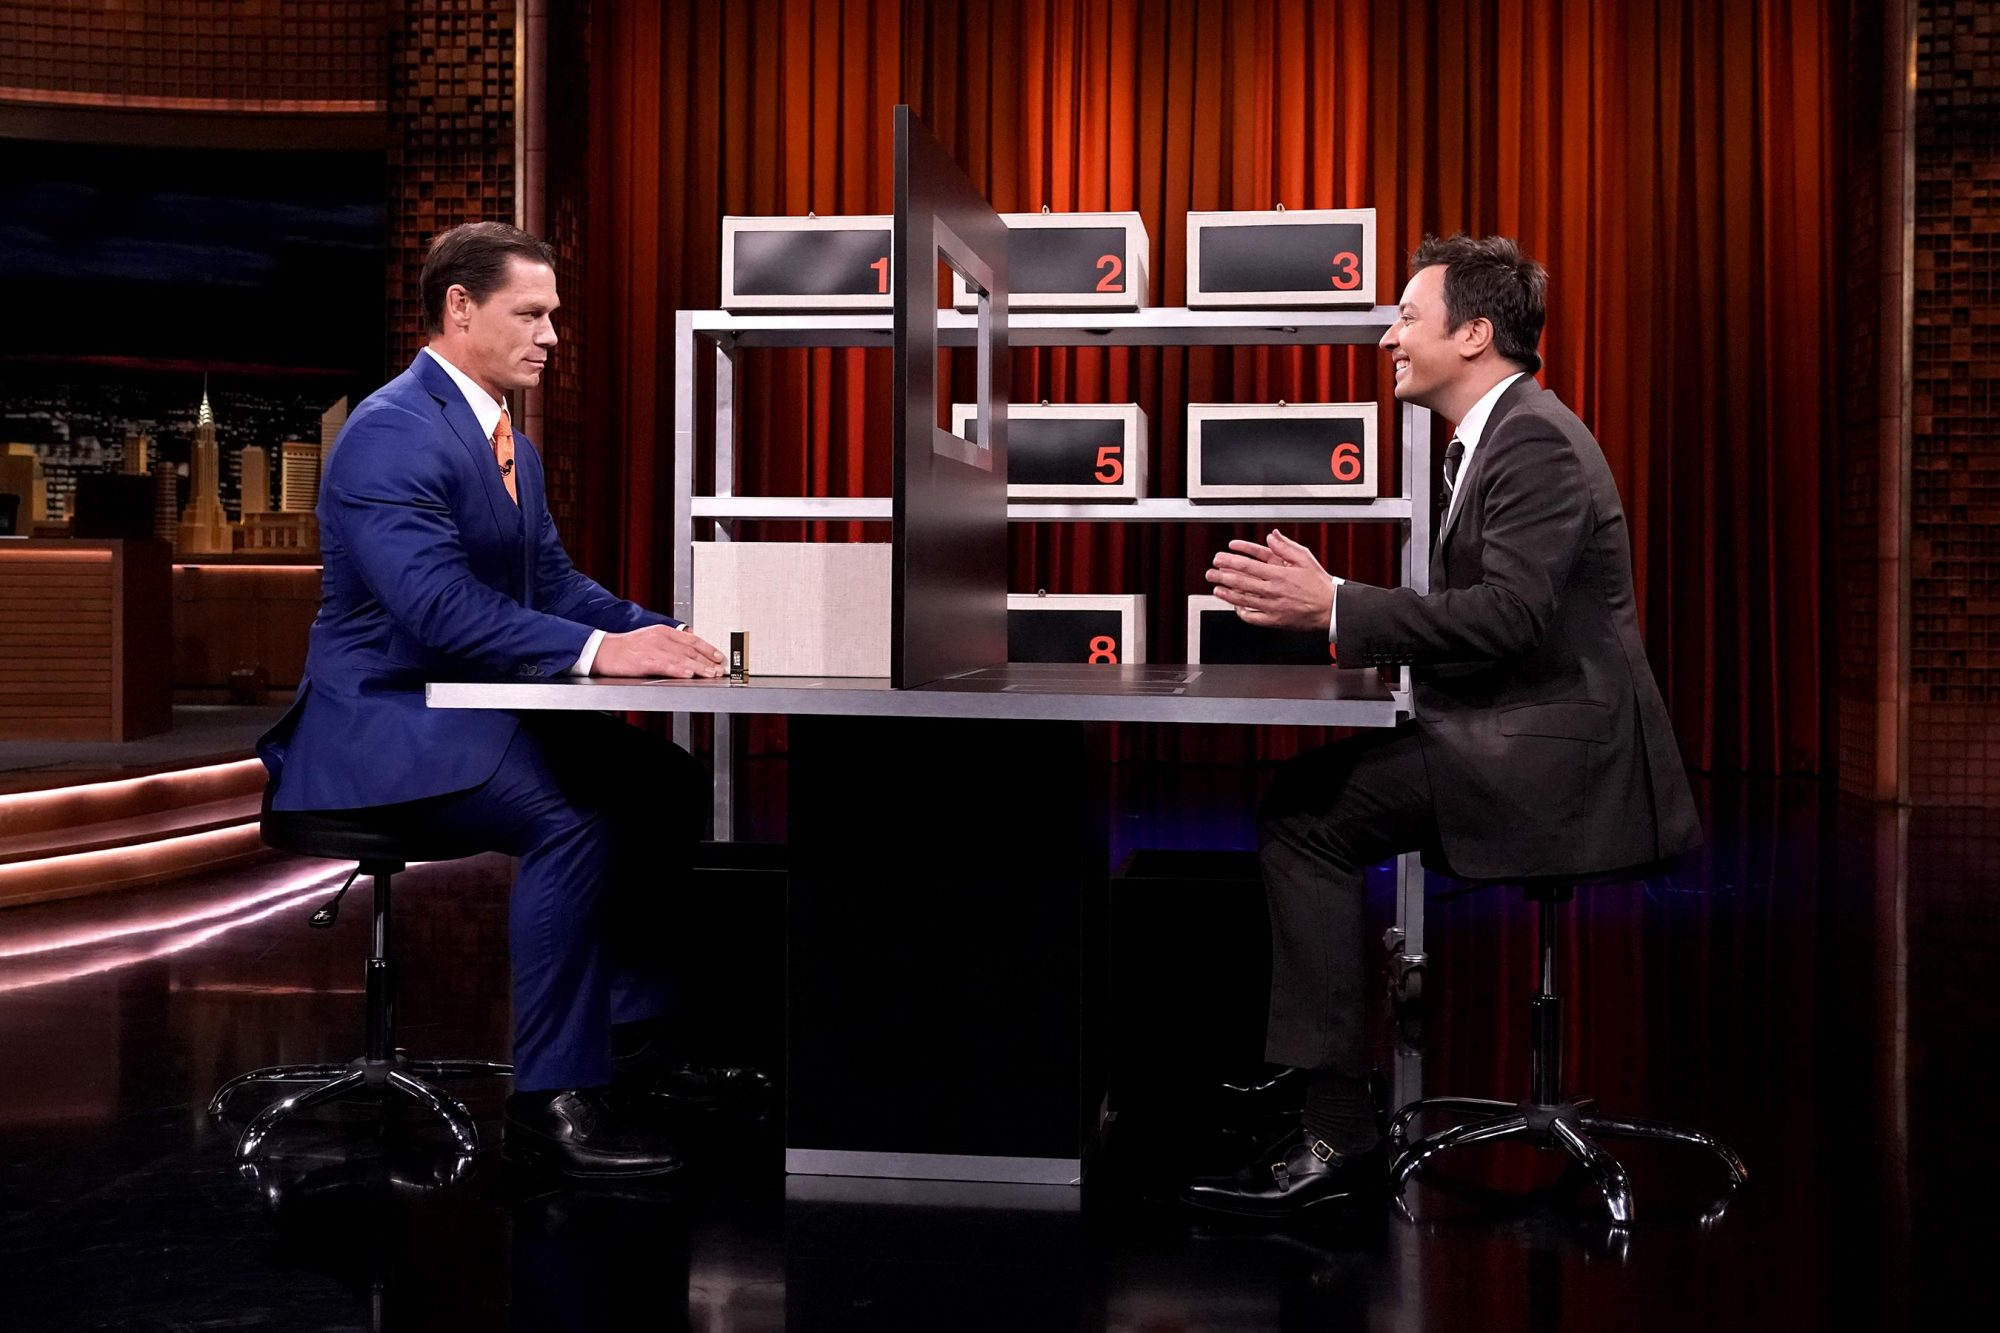 The TonigTHE TONIGHT SHOW STARRING JIMMY FALLONht Show Starring Jimmy Fallon - Season 6